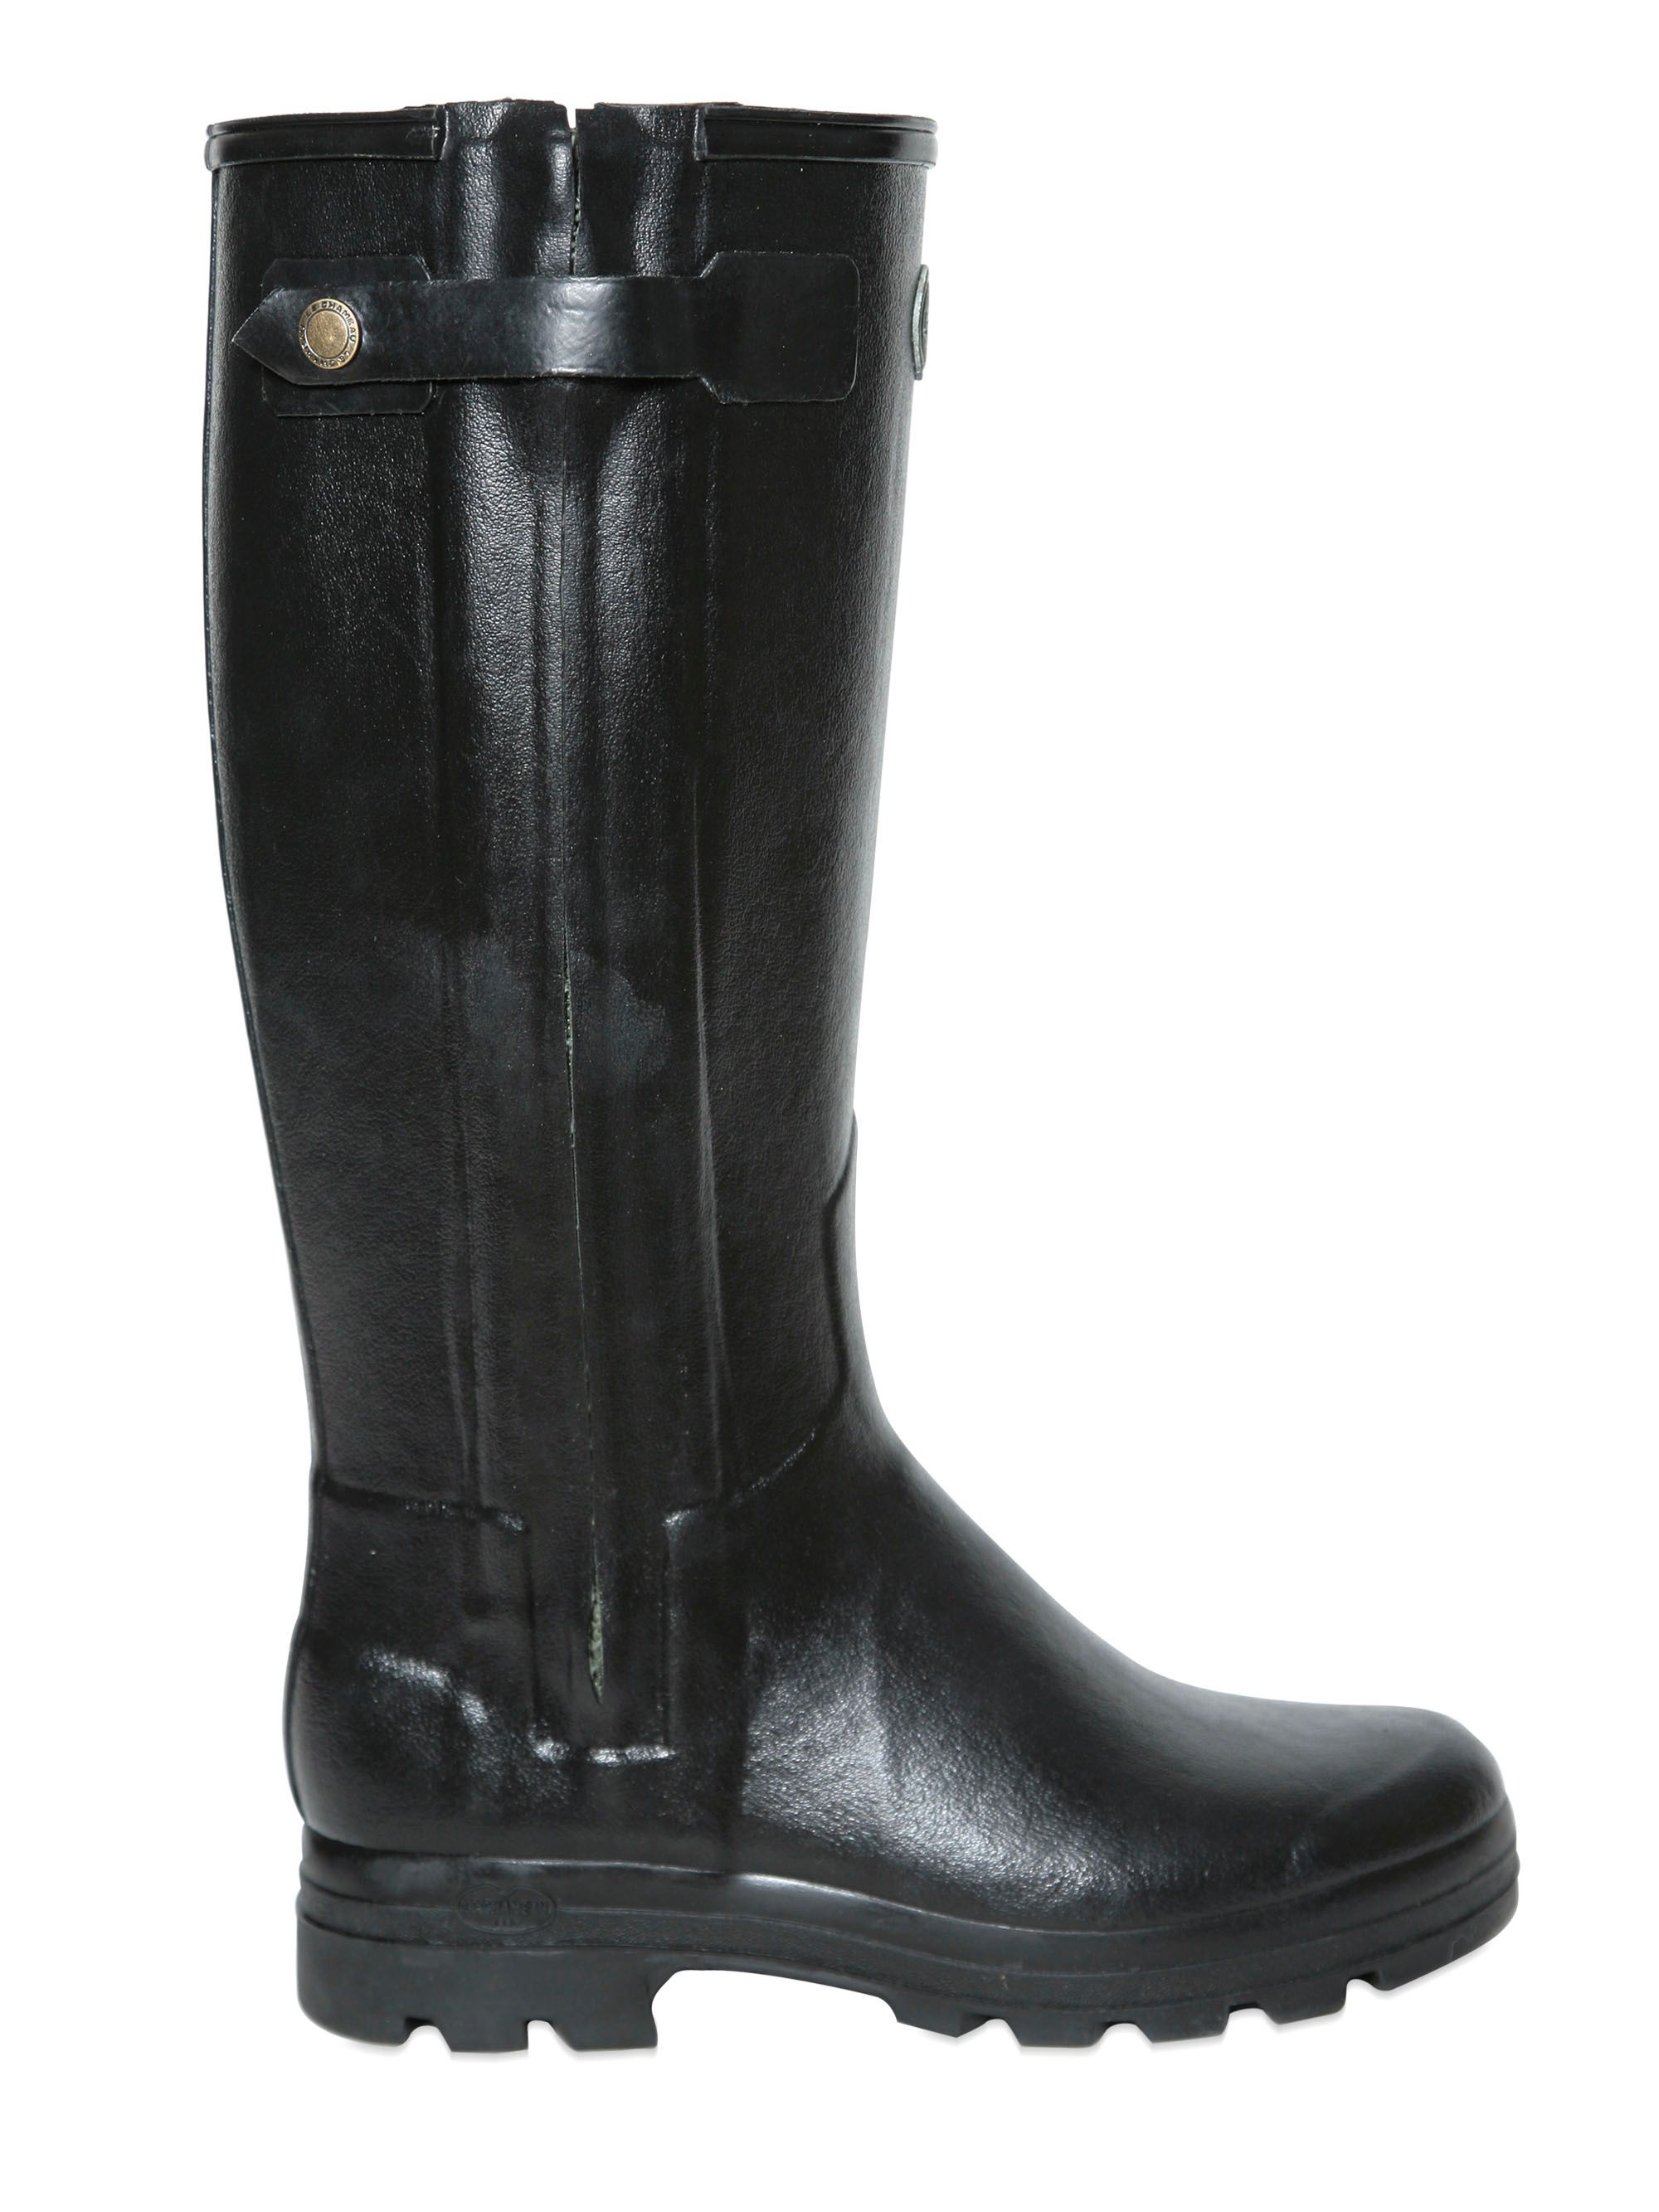 Le Chameau Natural Rubber Leather Rain Boots In Black For